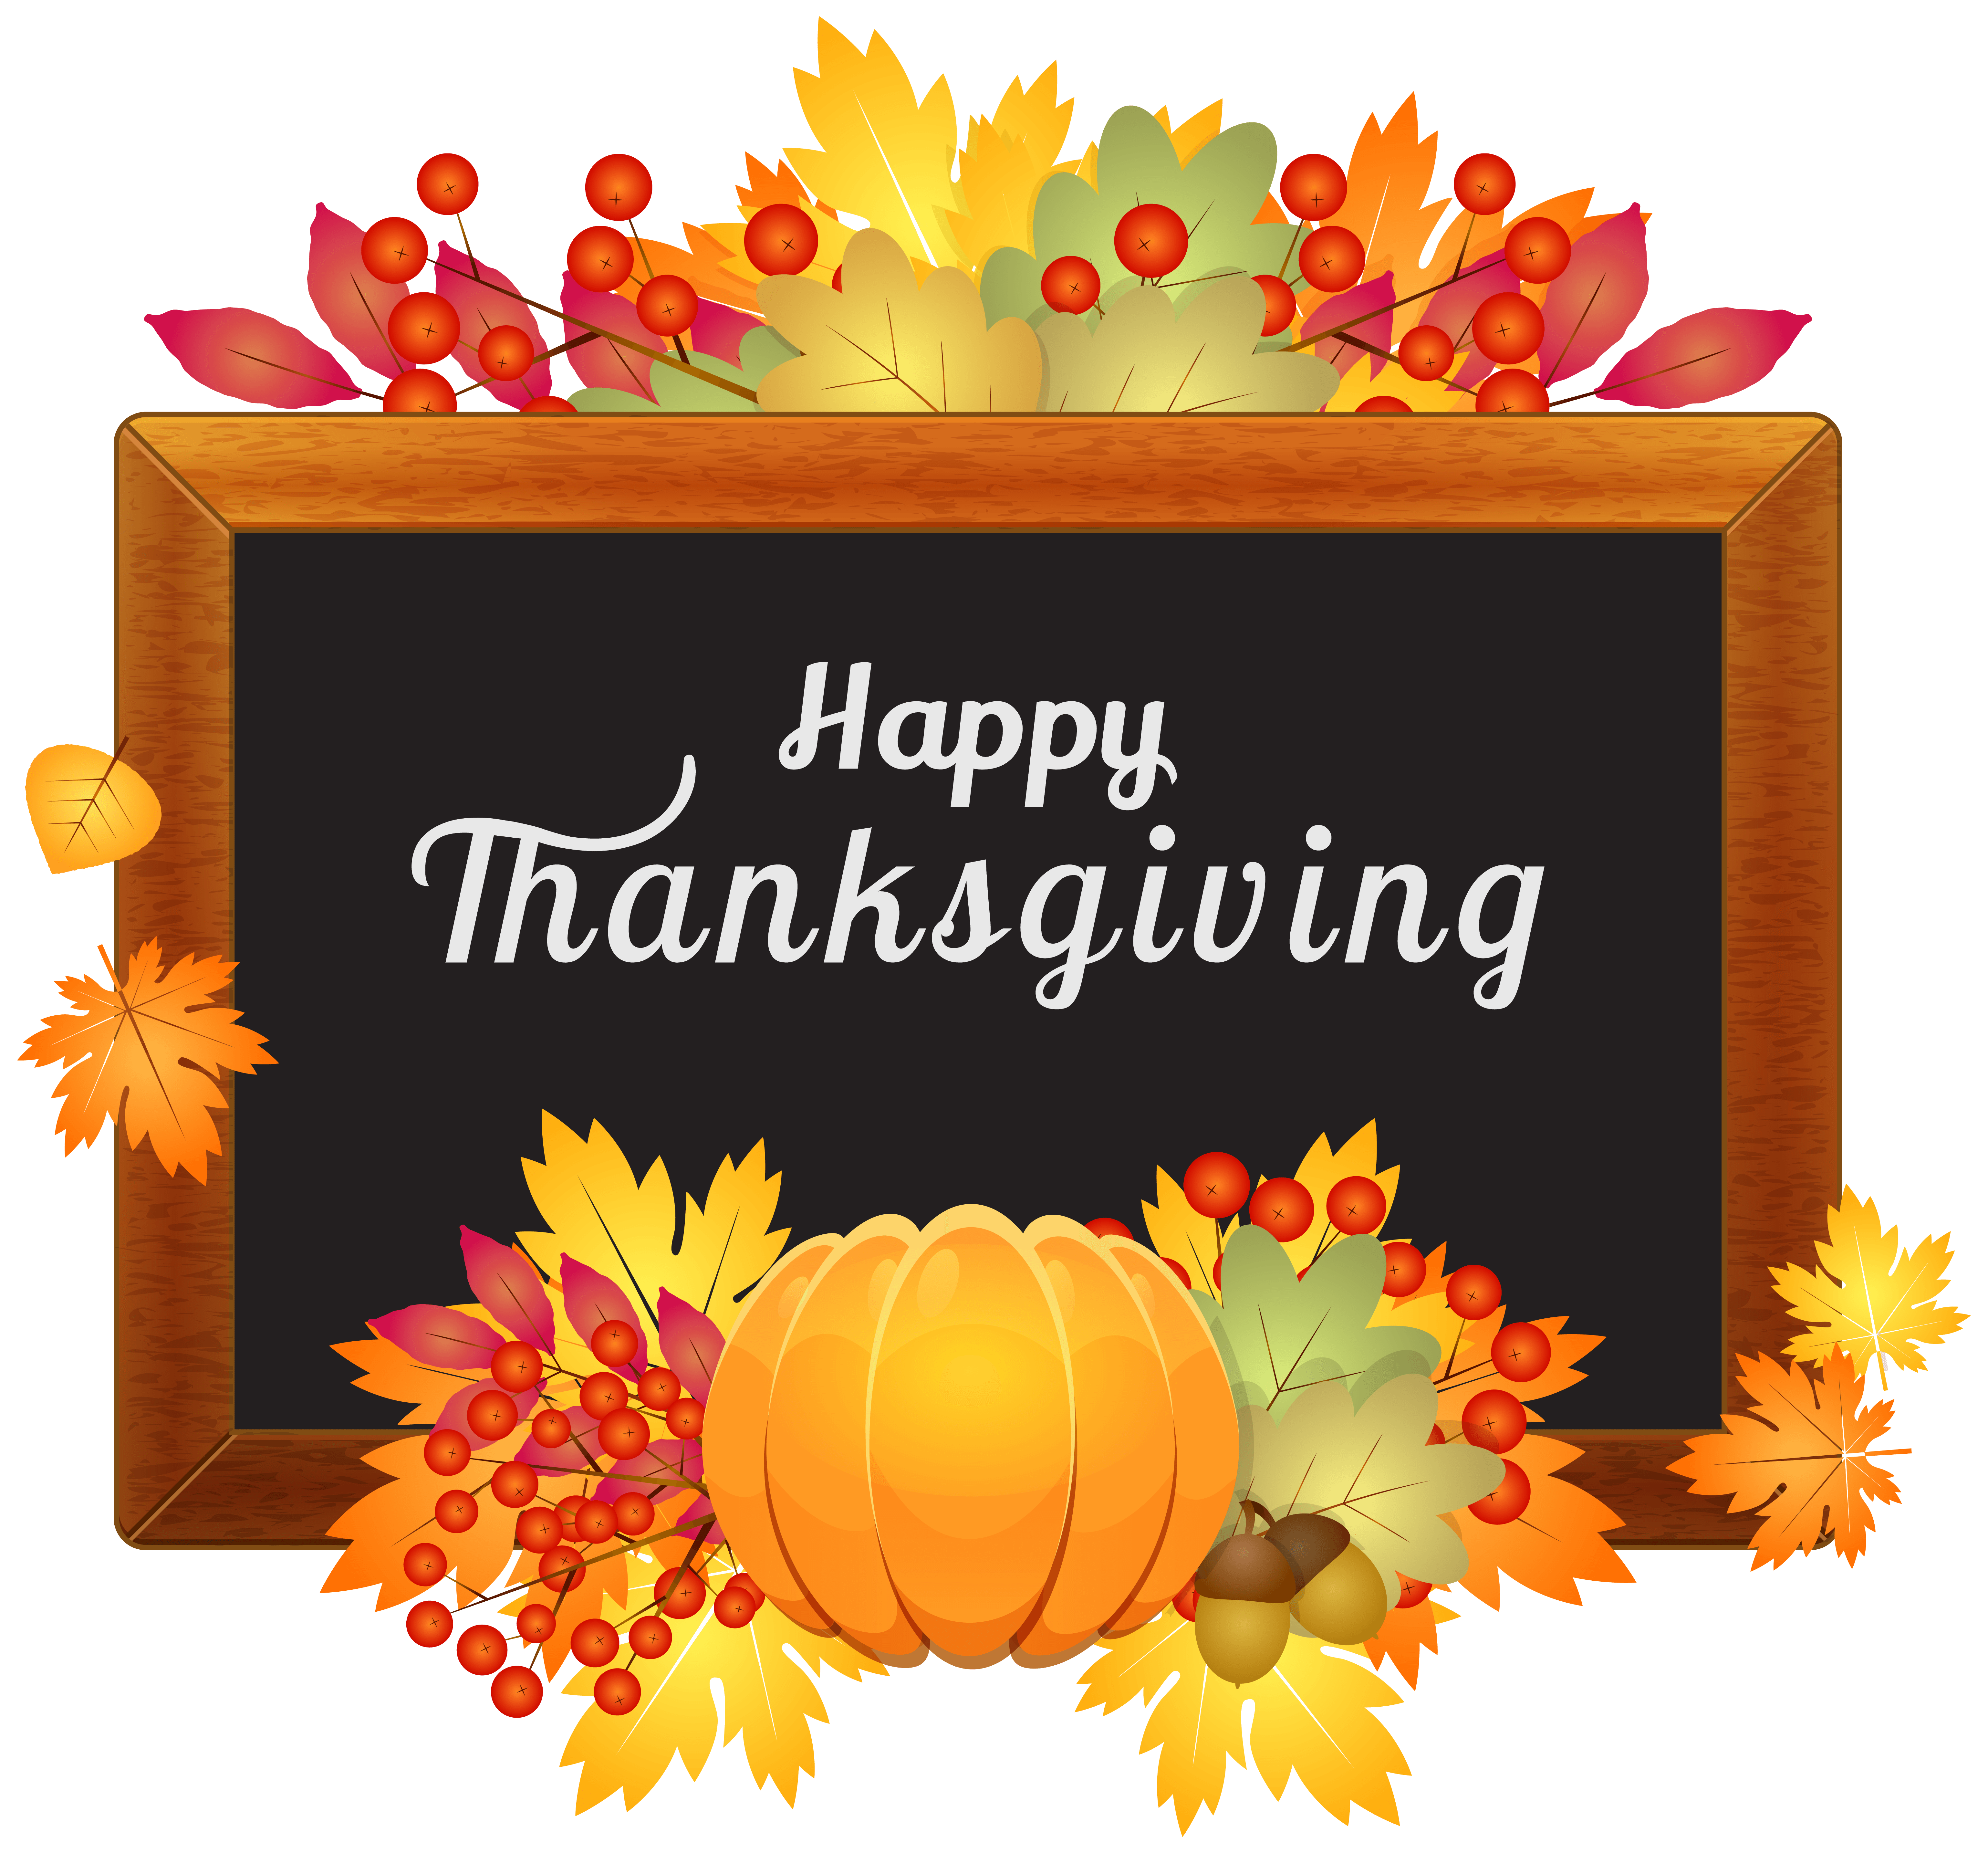 Happy thanksgiving christian clipart picture freeuse library Thanksgiving Cliparts Vacation - Cliparts Zone picture freeuse library